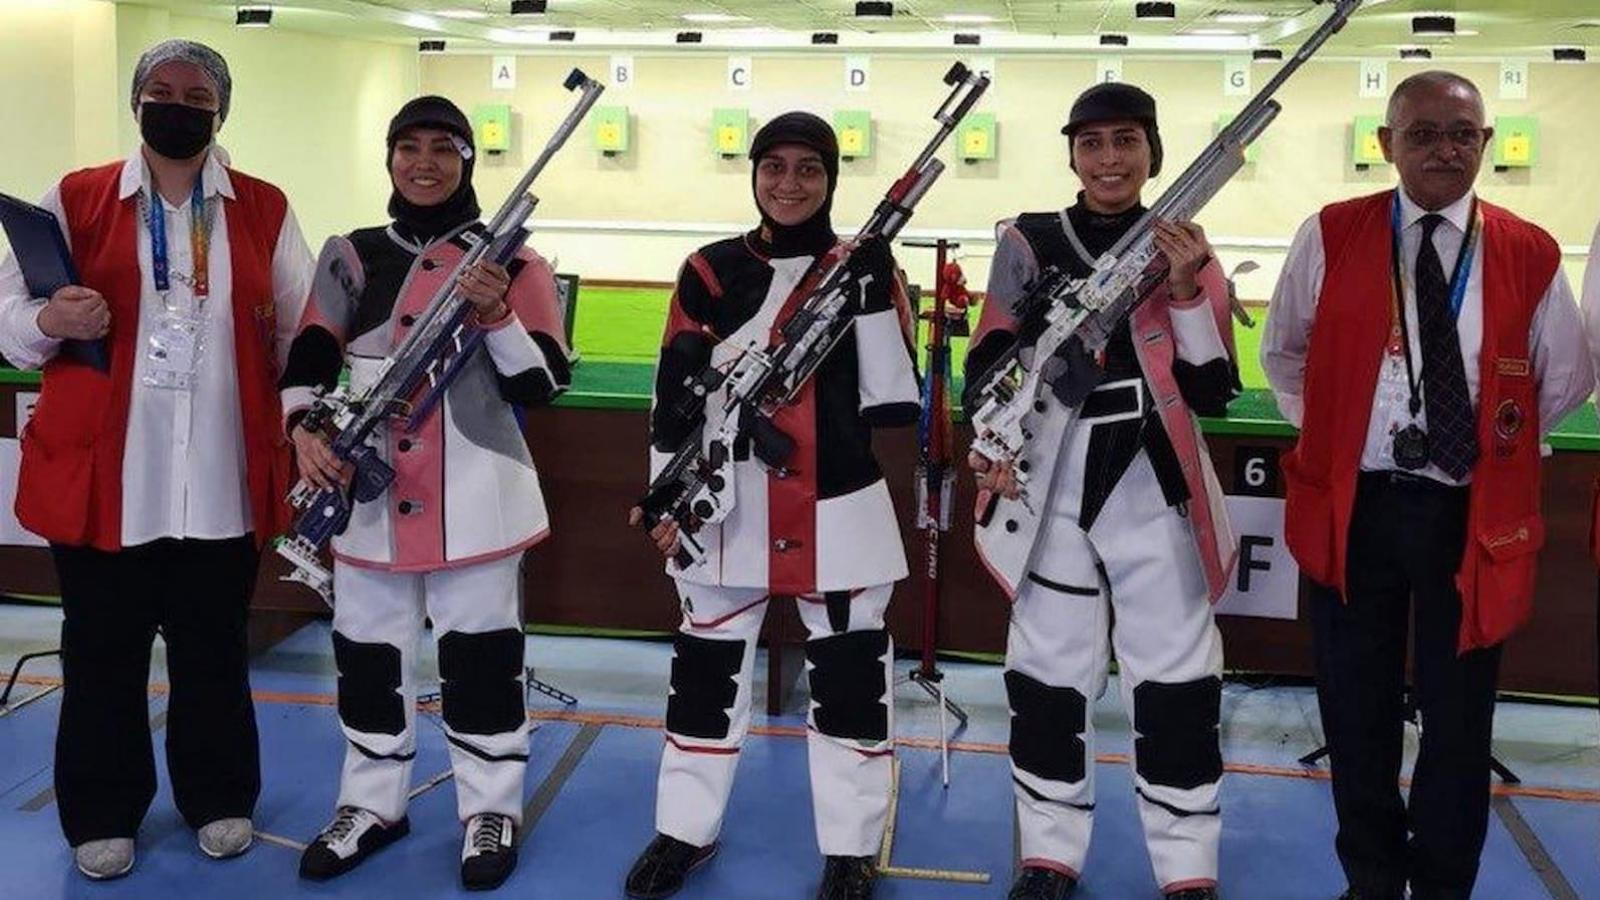 Qatar secures air rifle gold medal in Arab Shooting Championships